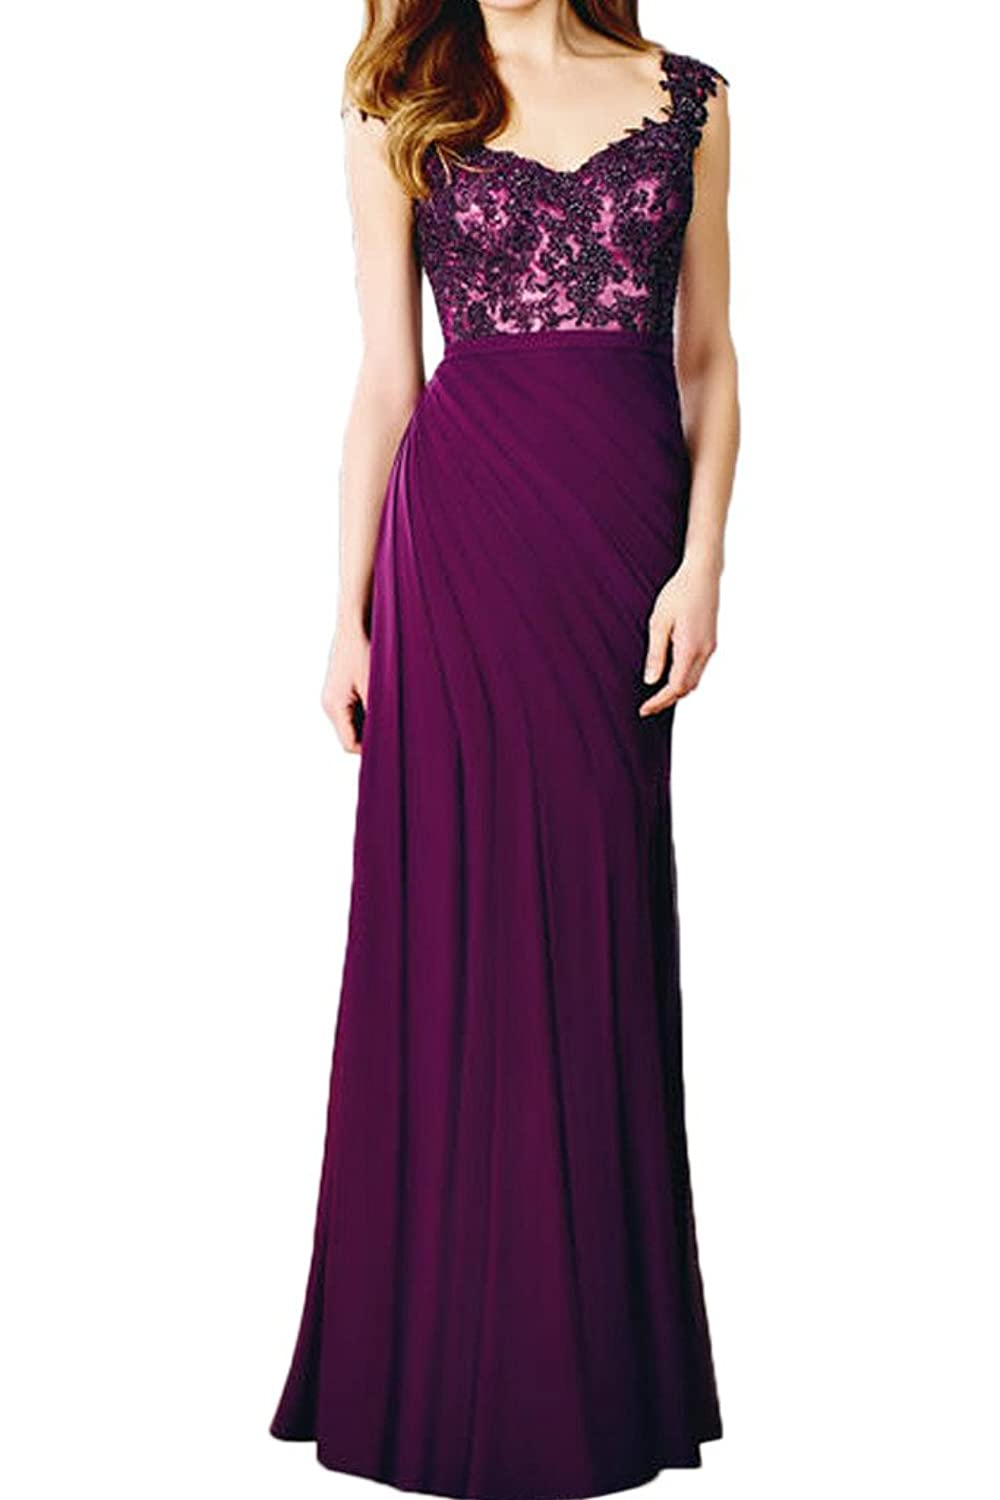 Gorgeous Bride A-line Cap Sleeves Lace Mother of the Bride Evening Dress